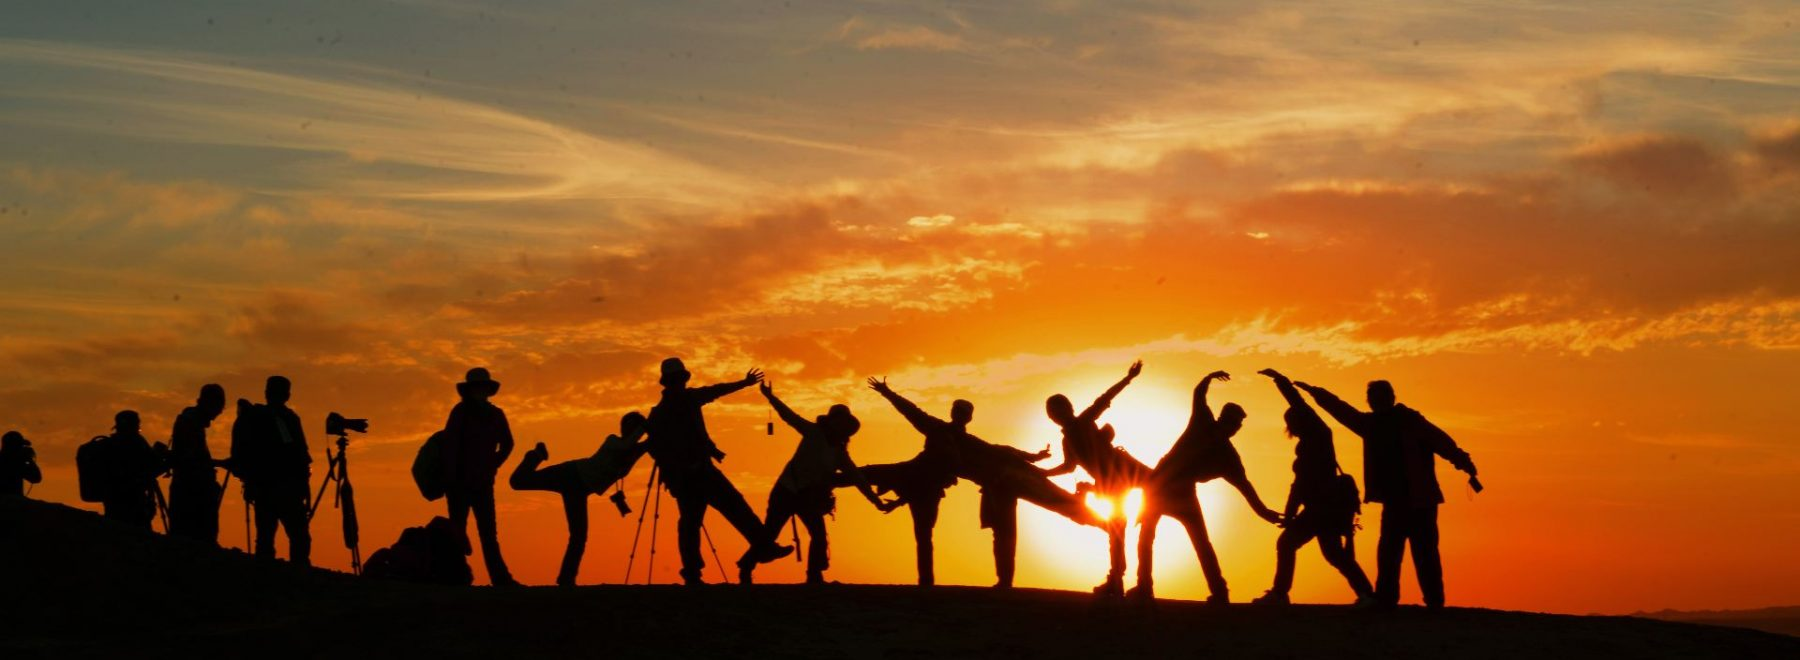 A group of people taking part in yoga in the sunset